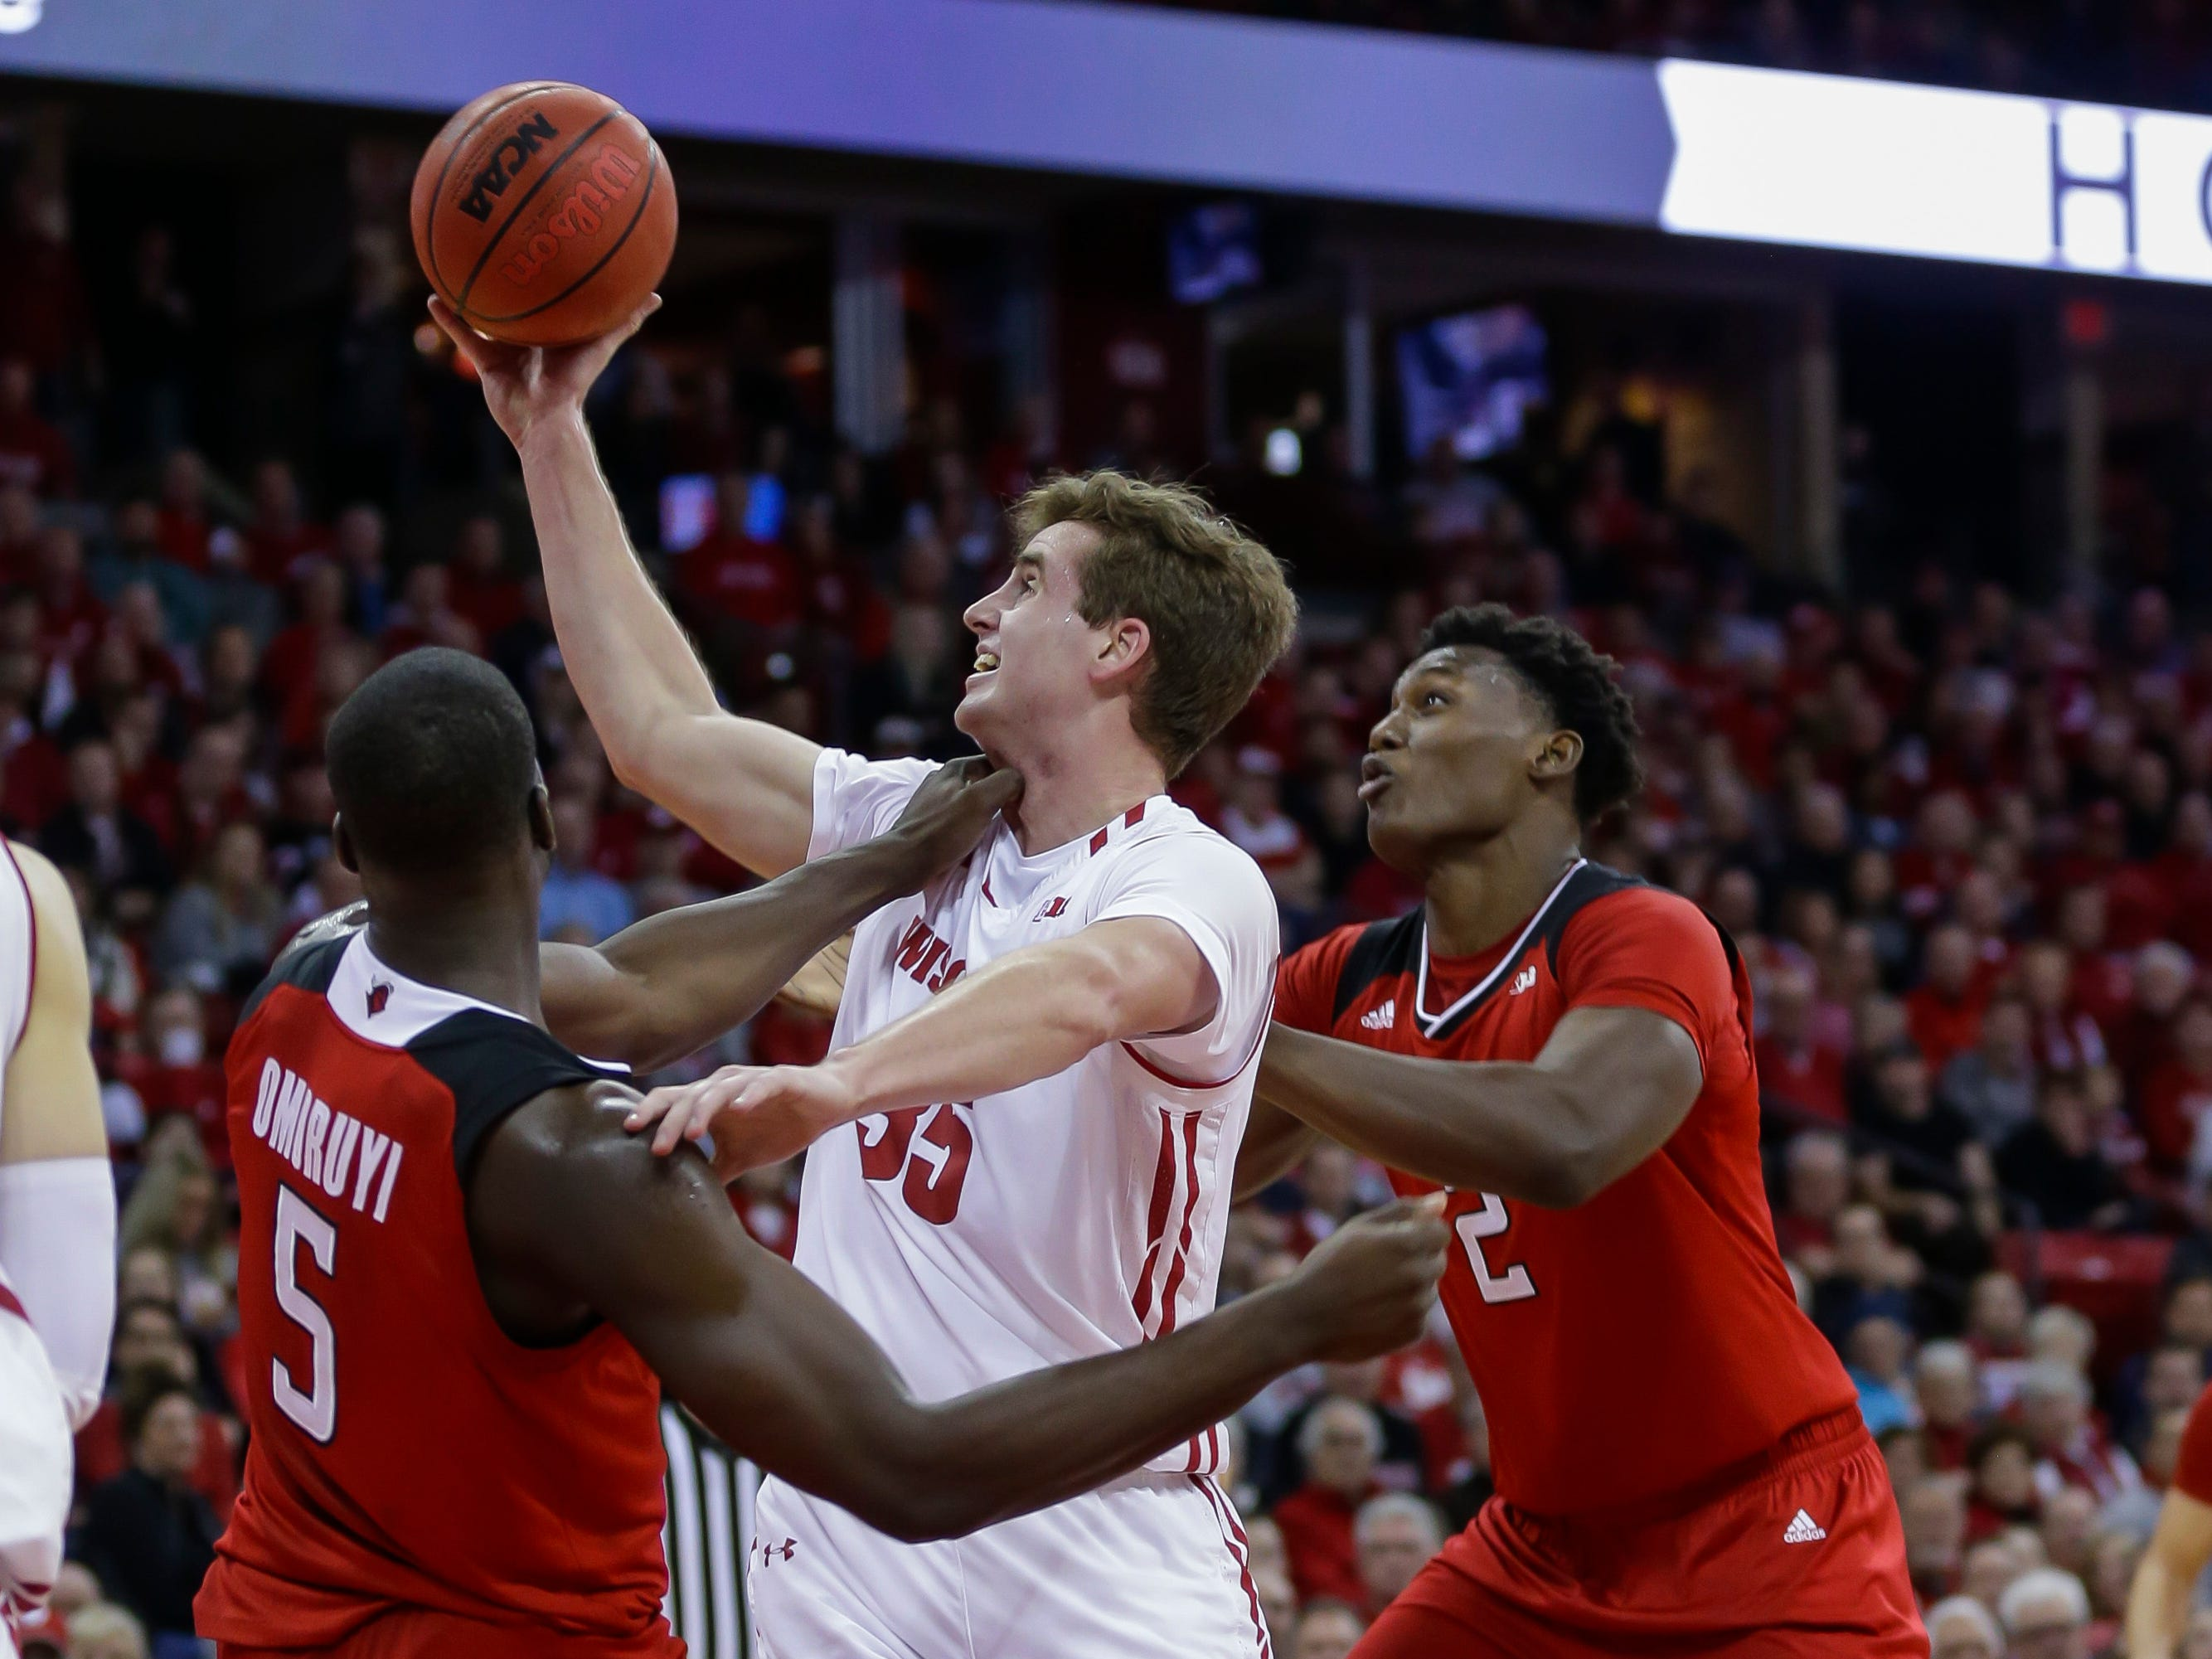 Wisconsin forward Nate Reuvers goes up for a shot between Eugene Omoruyi (5) and Shaquille Doorson of Rutgers during the first half on Monday night.